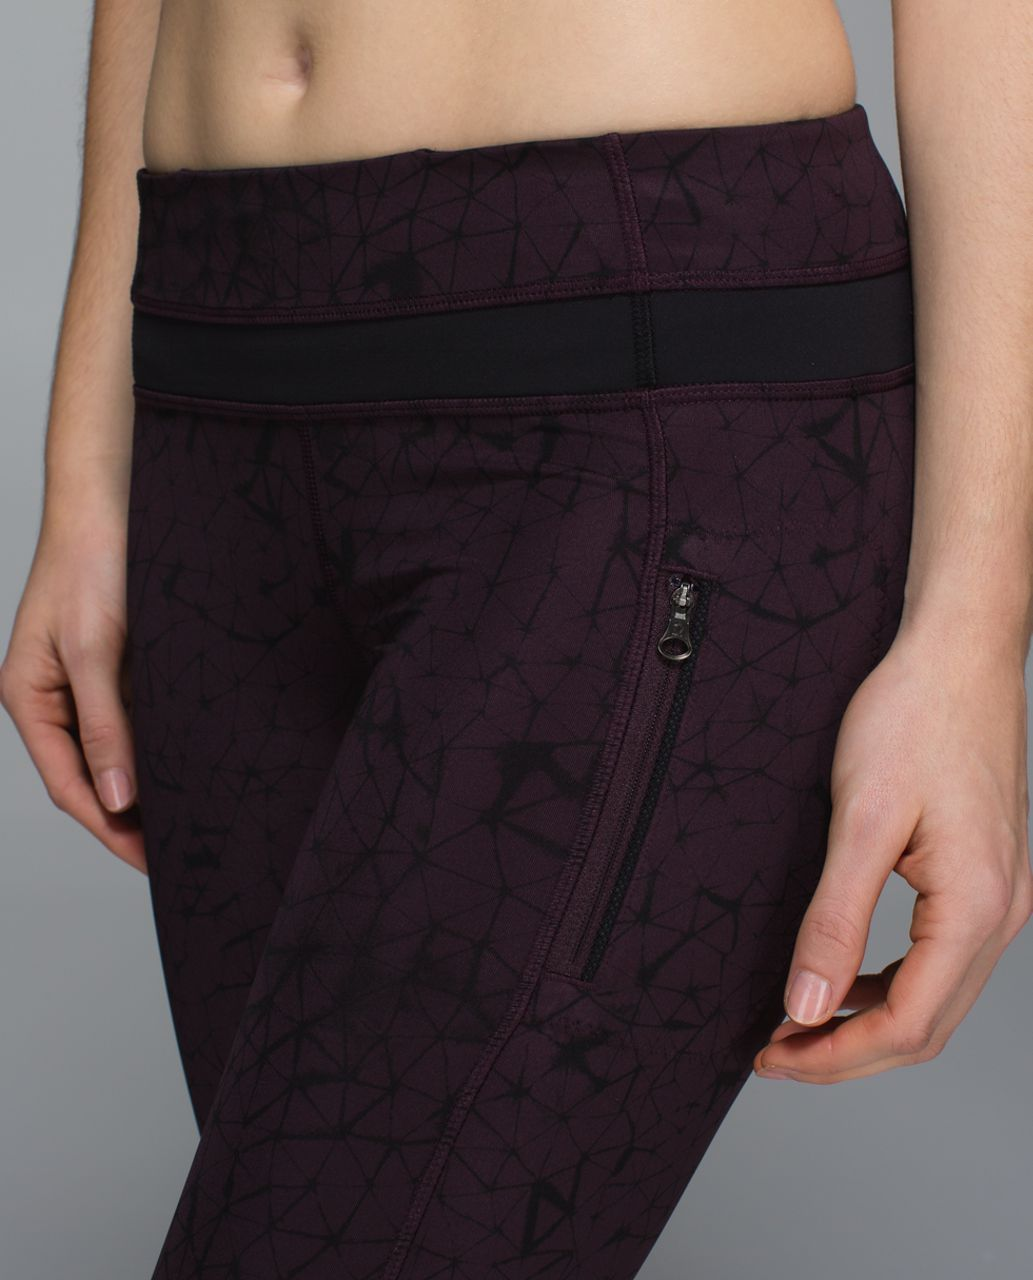 Lululemon Inspire Tight II *Full-On Luxtreme (Mesh) - Star Crushed Black Cherry Black / Black / Black Cherry